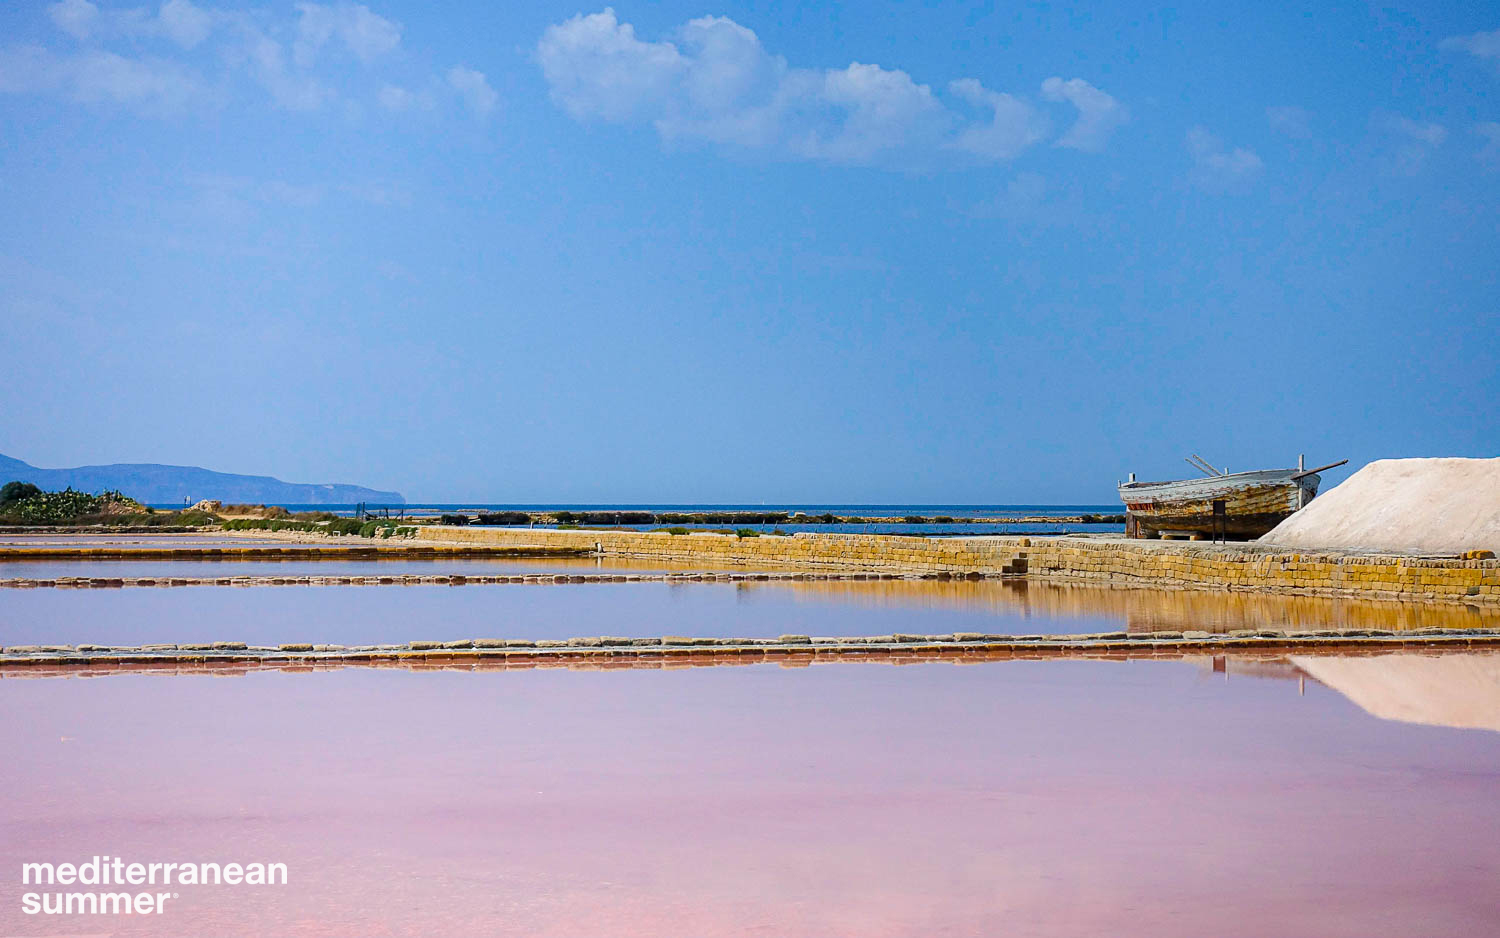 The ancient sea salt pans of Trapani, Sicily are still in use today. (Photo by David Shalleck)